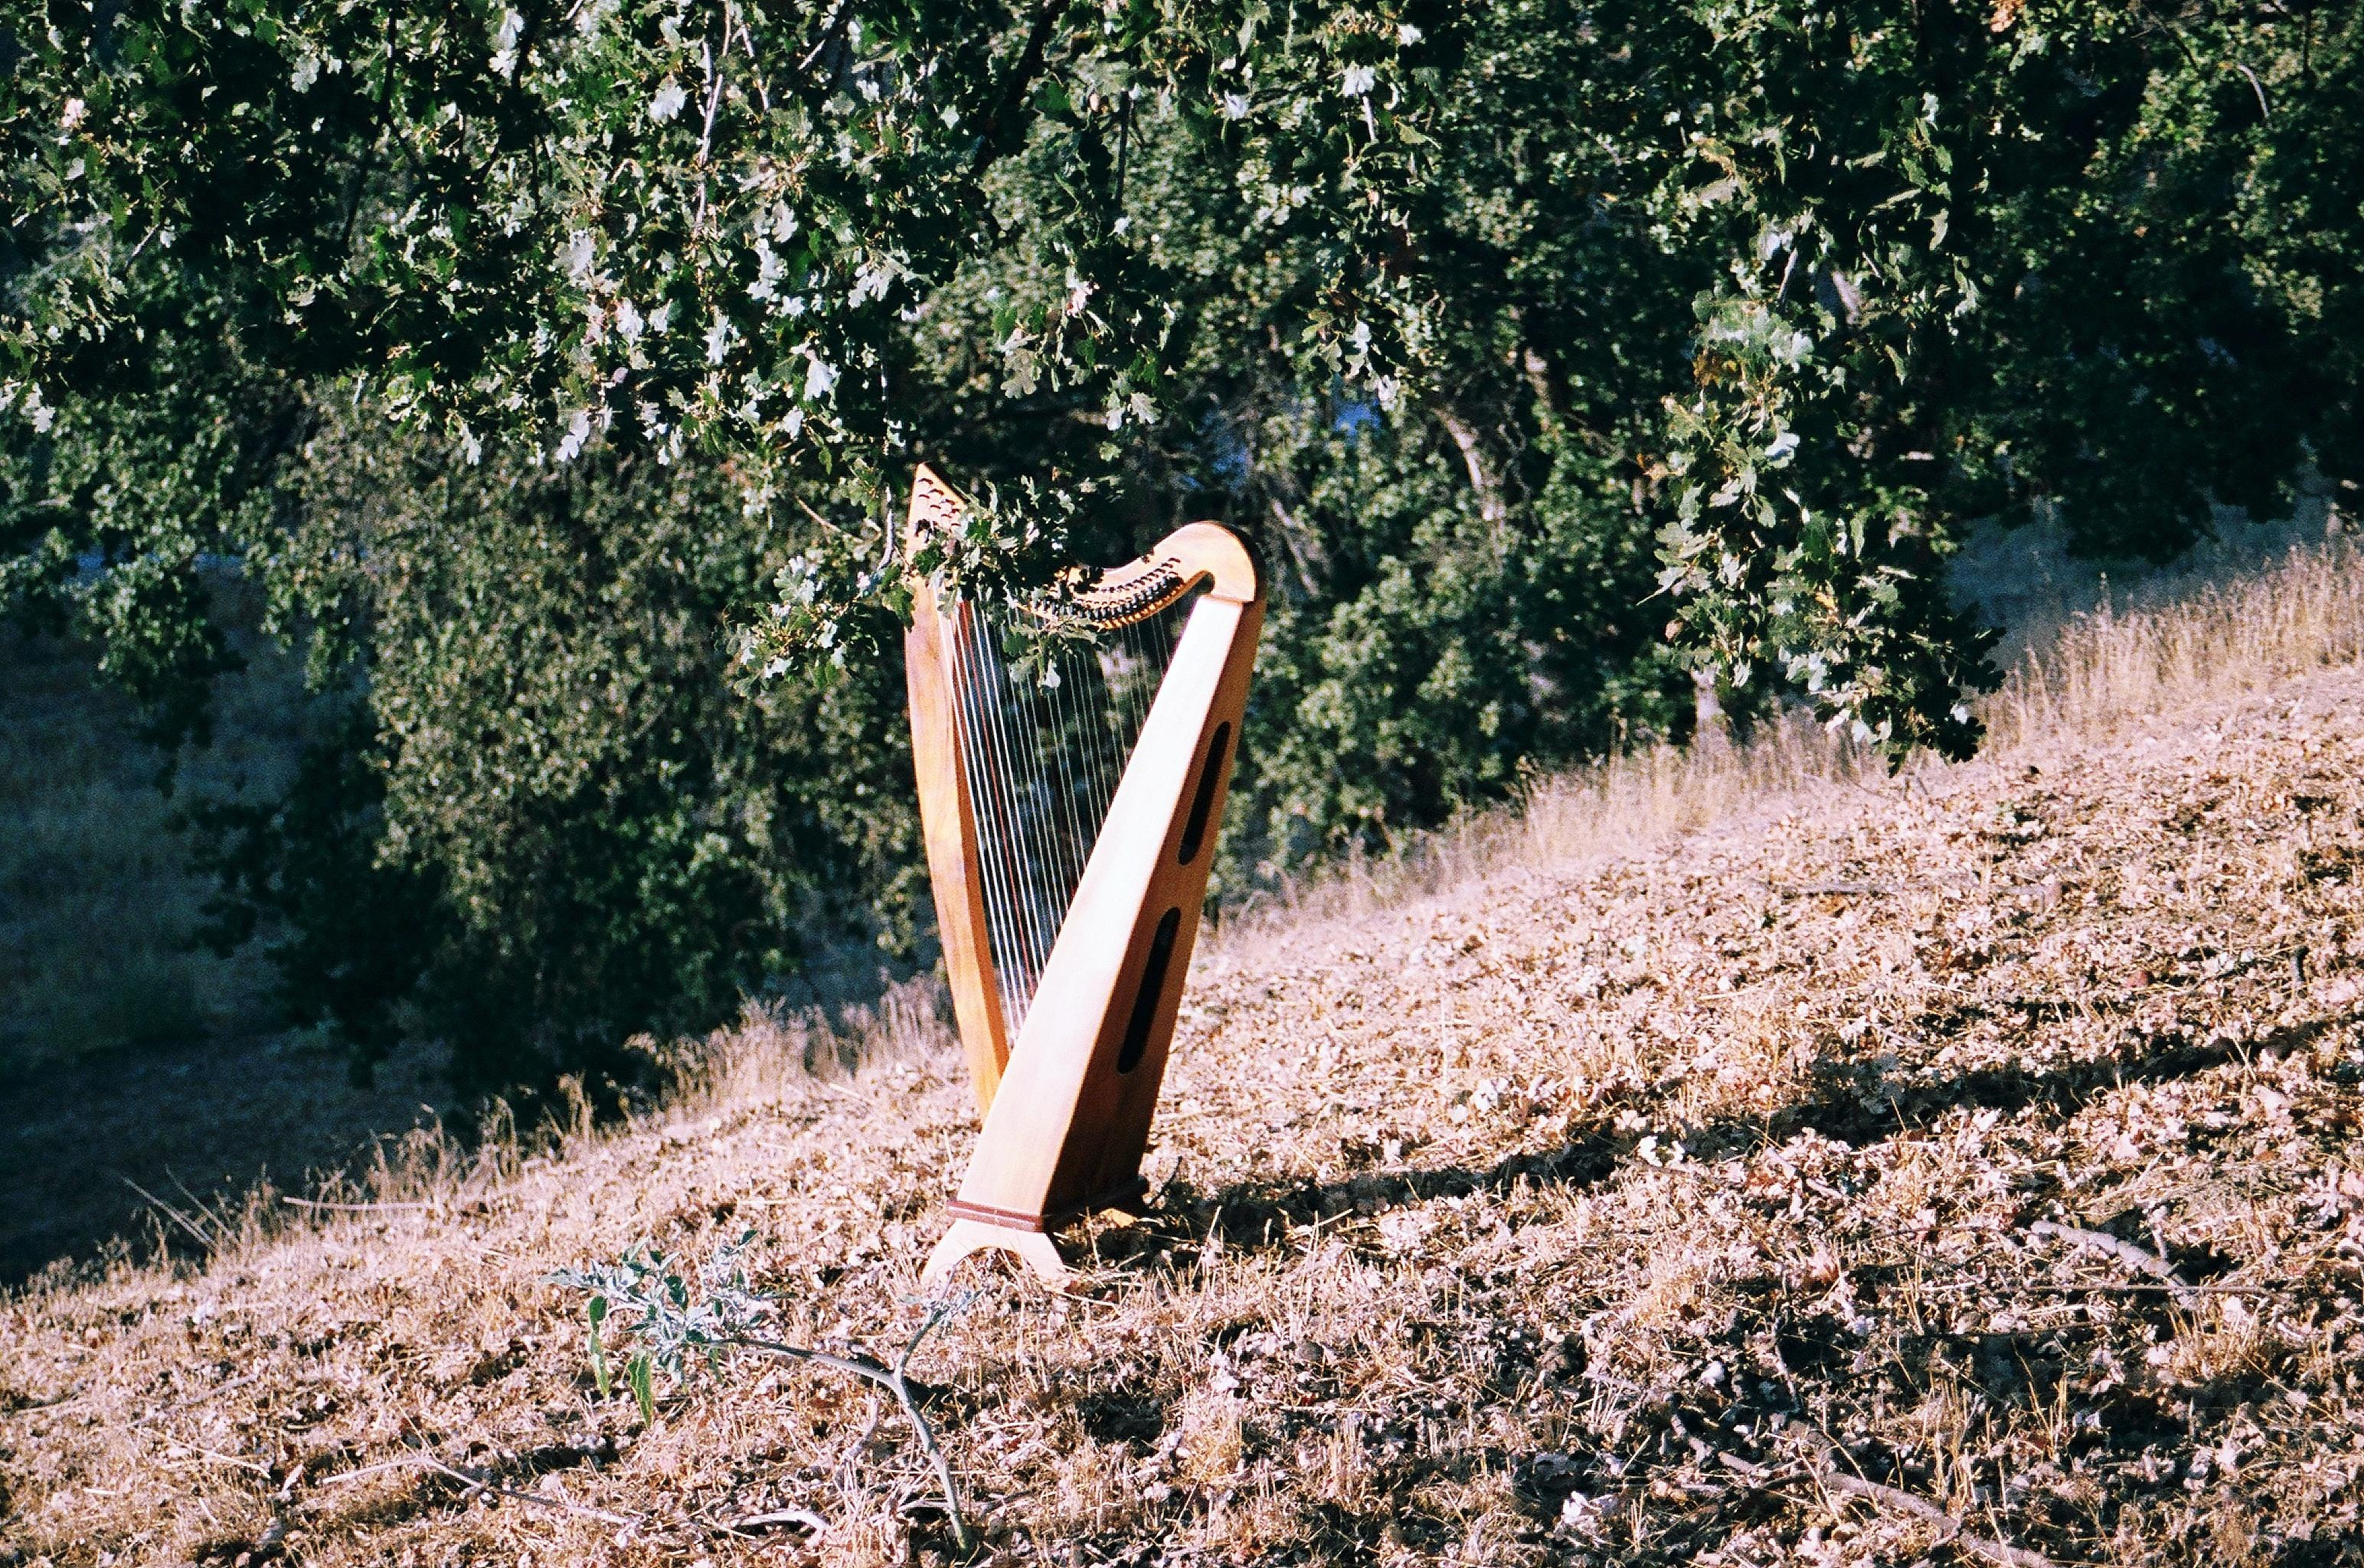 Hollienea, Harpist Los Angeles